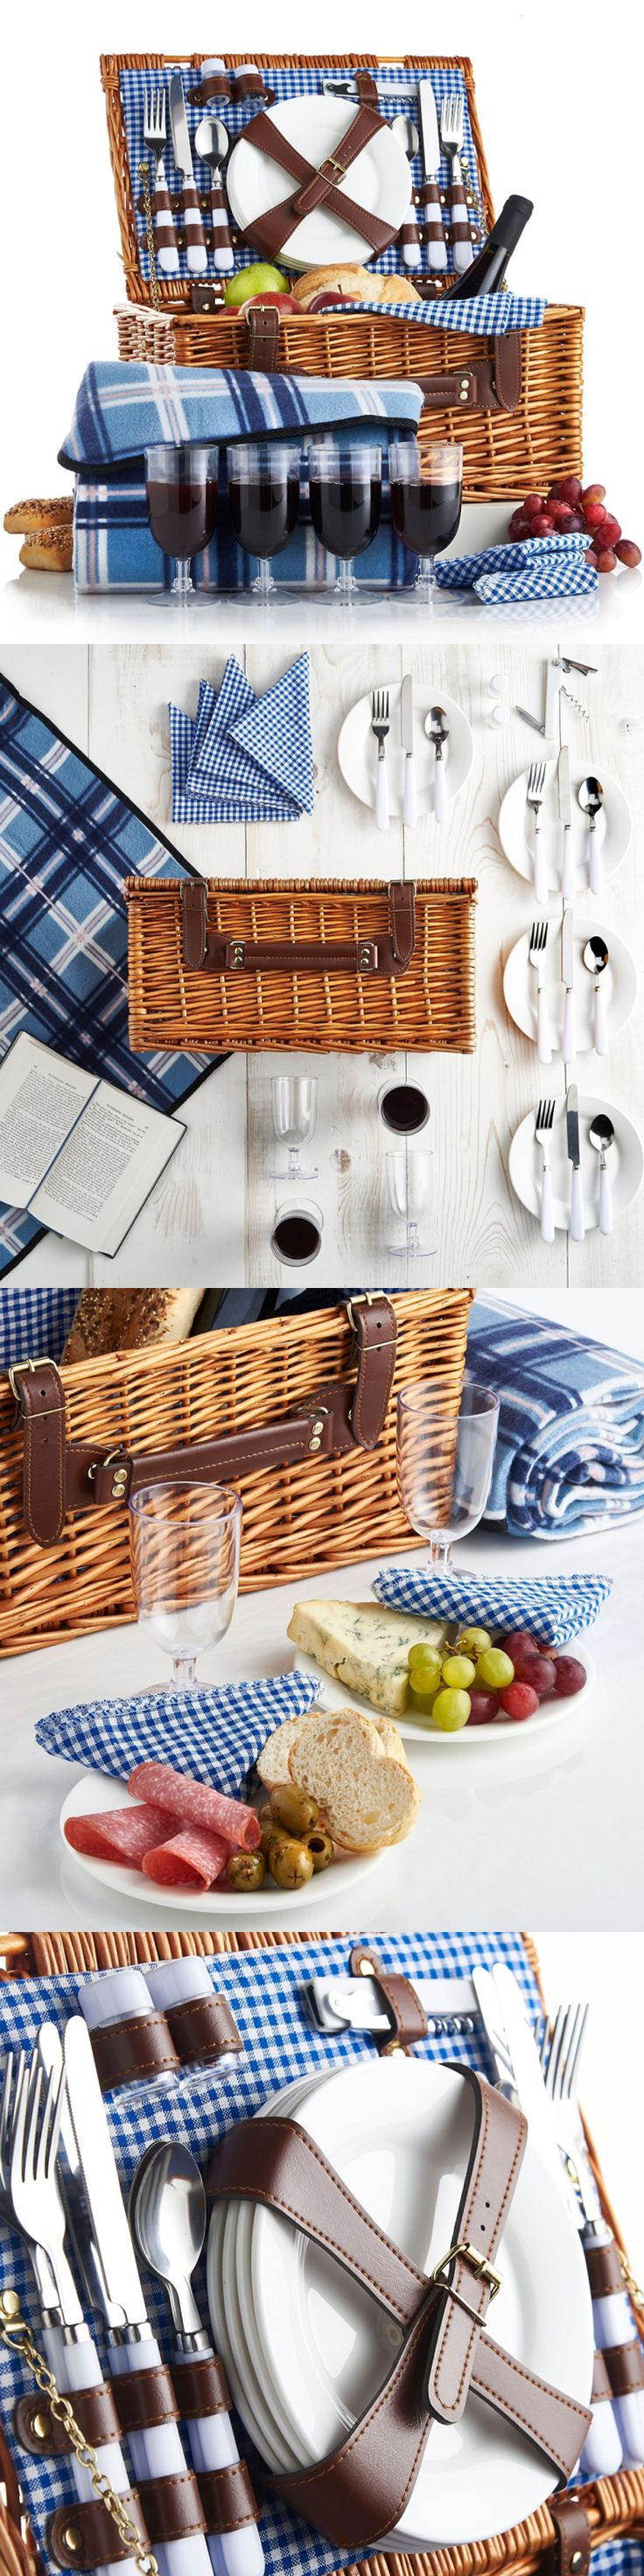 Picnic Baskets and Backpacks 38249: New 4 Person Wicker Picnic Basket Set Flatware Plates And Wine Glasses Blanket -> BUY IT NOW ONLY: $65.52 on eBay!